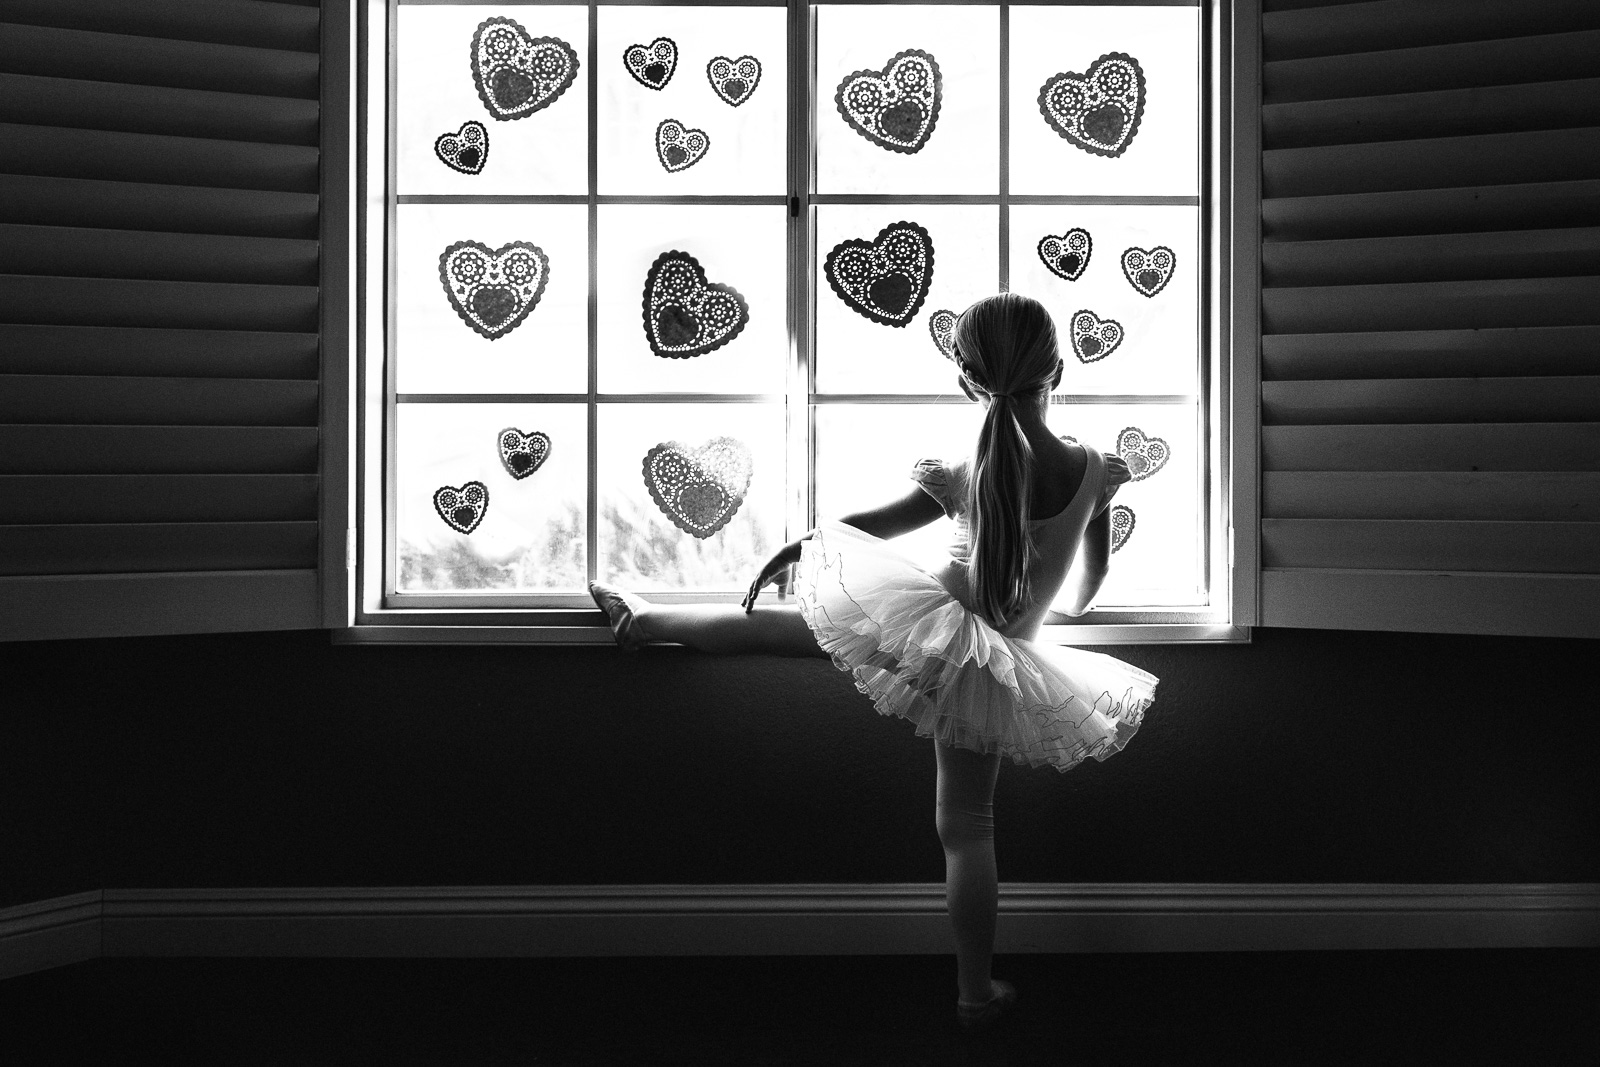 Unexpected Backdrops Window decorated with lace hearts girl in tutu black and white karlee hooper